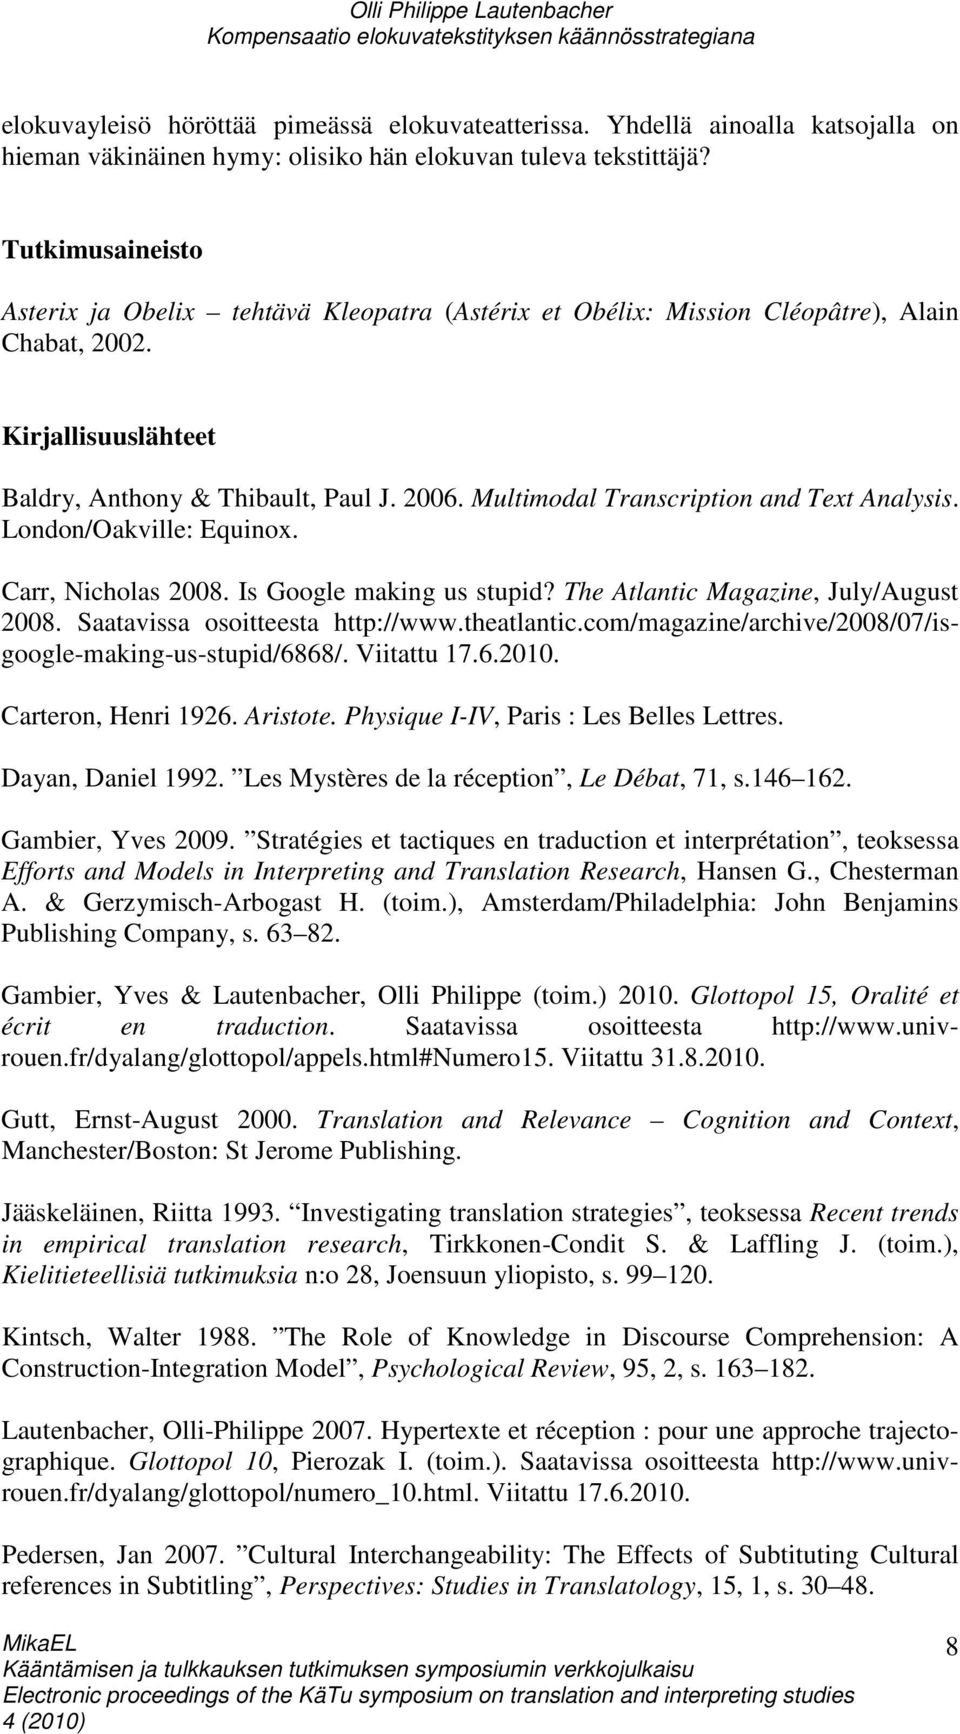 Multimodal Transcription and Text Analysis. London/Oakville: Equinox. Carr, Nicholas 2008. Is Google making us stupid? The Atlantic Magazine, July/August 2008. Saatavissa osoitteesta http://www.